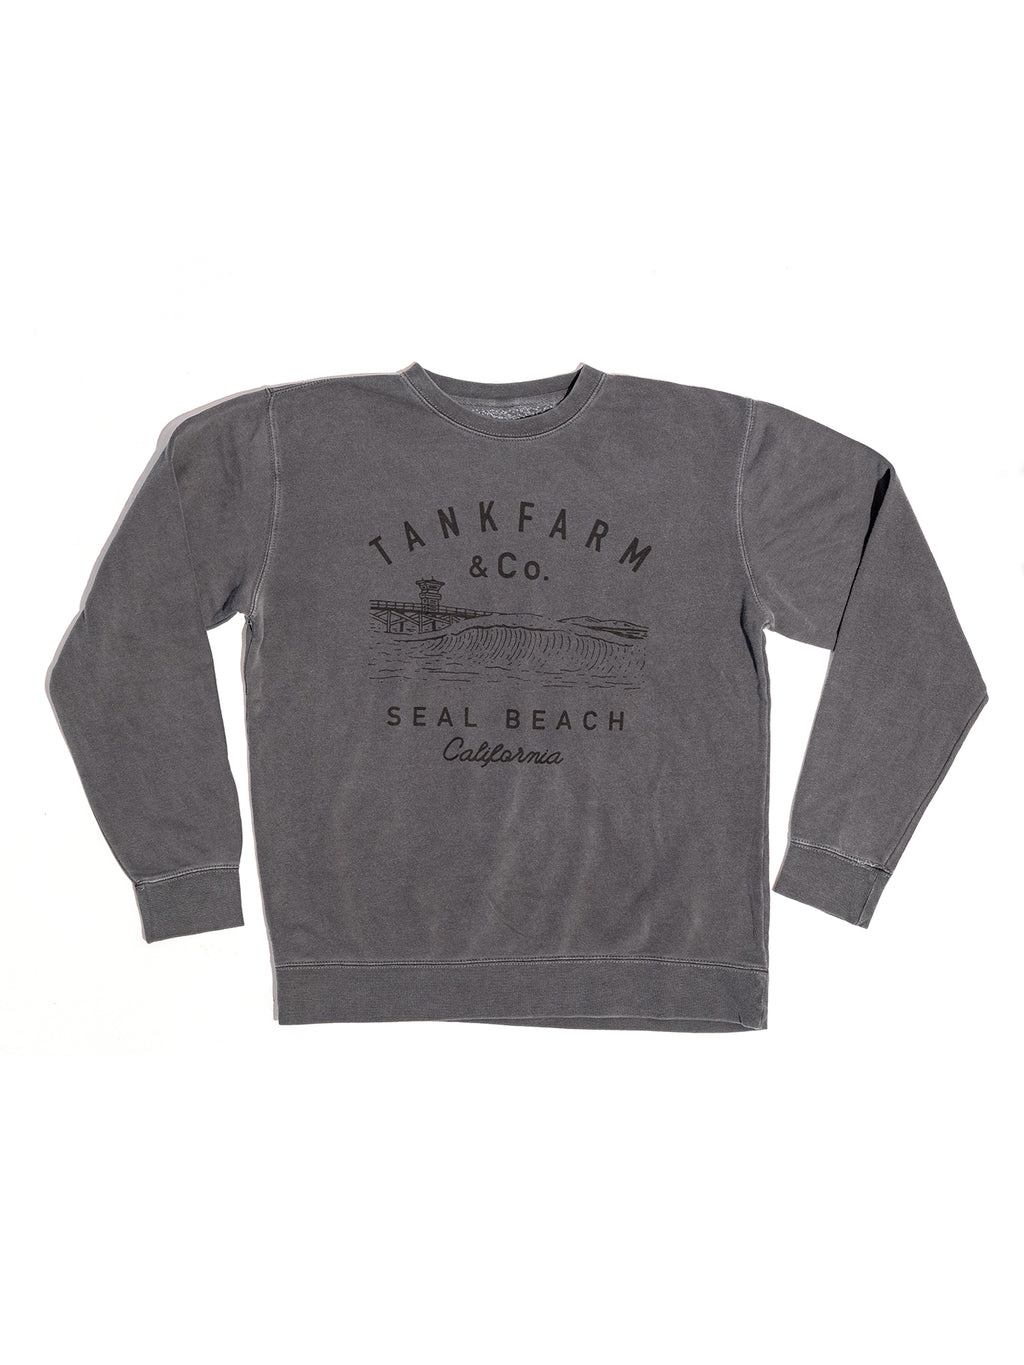 SHORE BREAK CREW NECK - VINTAGE BLACK - Tankfarm & Co.